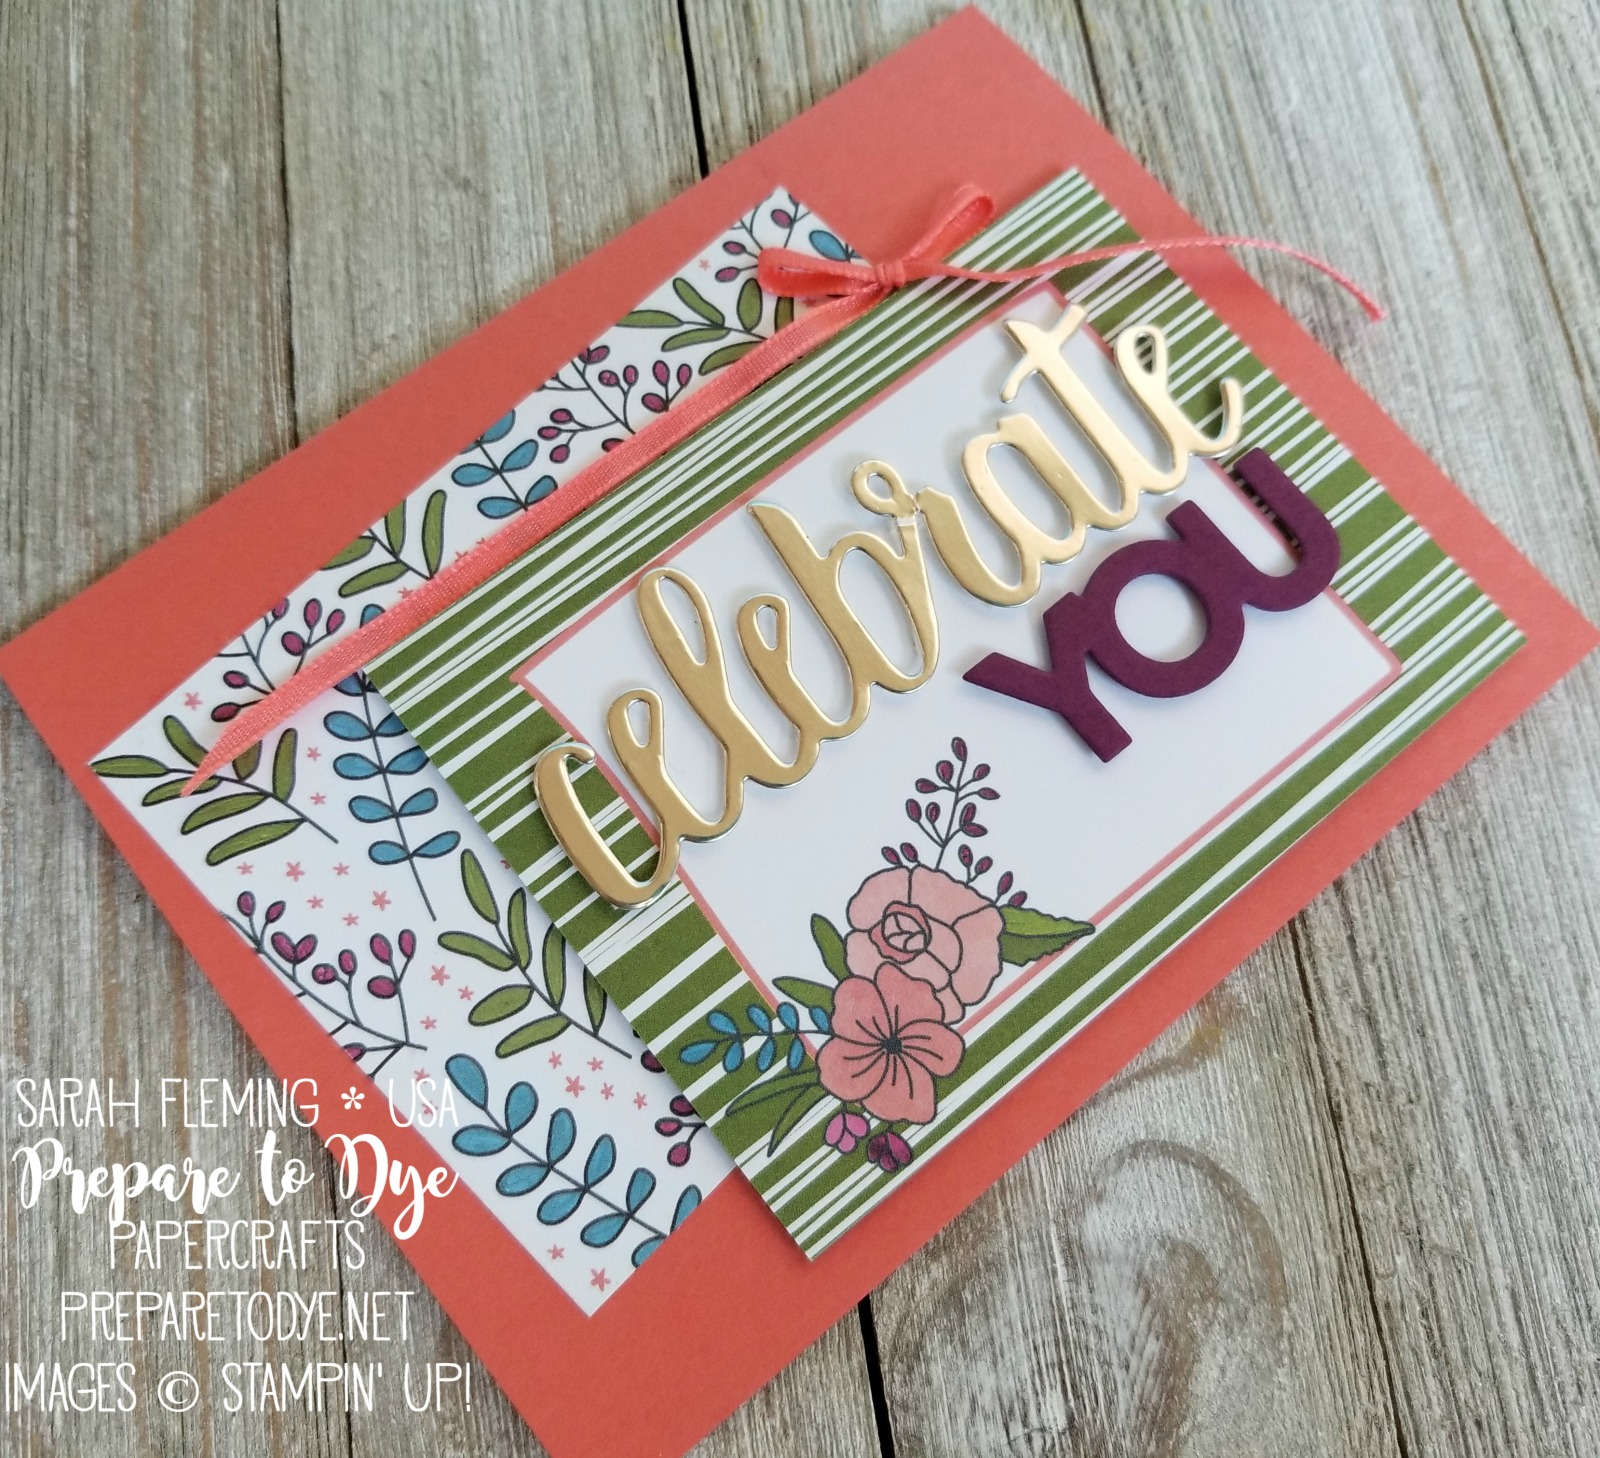 Stampin' Up! Amazing You with Celebrate You thinlits - Sale-A-Bration 2018 freebies - and Sweet Soiree paper and Sweet Soiree Memories & More Card Pack - Sarah Fleming - Prepare to Dye Papercrafts